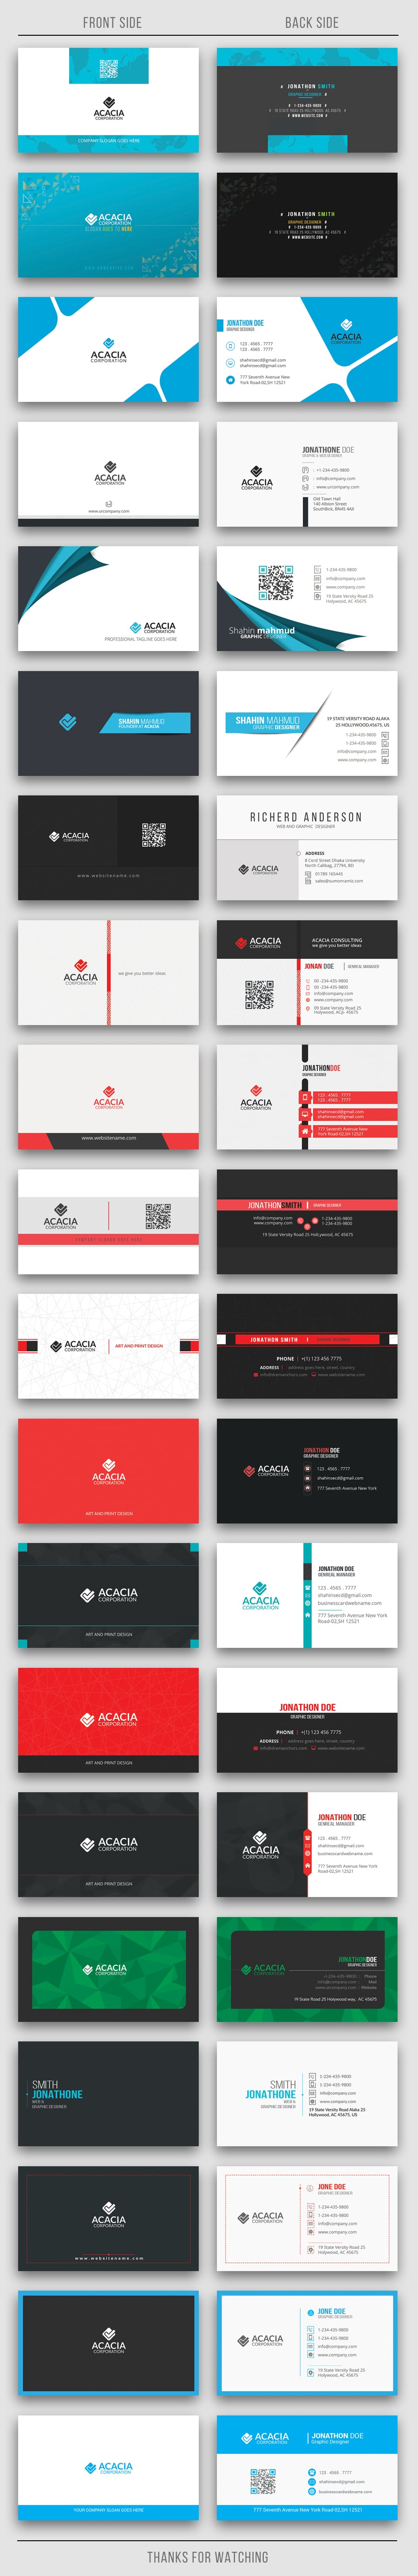 90% off RIGHT NOW!  $200 worth Business Cards for just 19$ - FULL PREVIEW